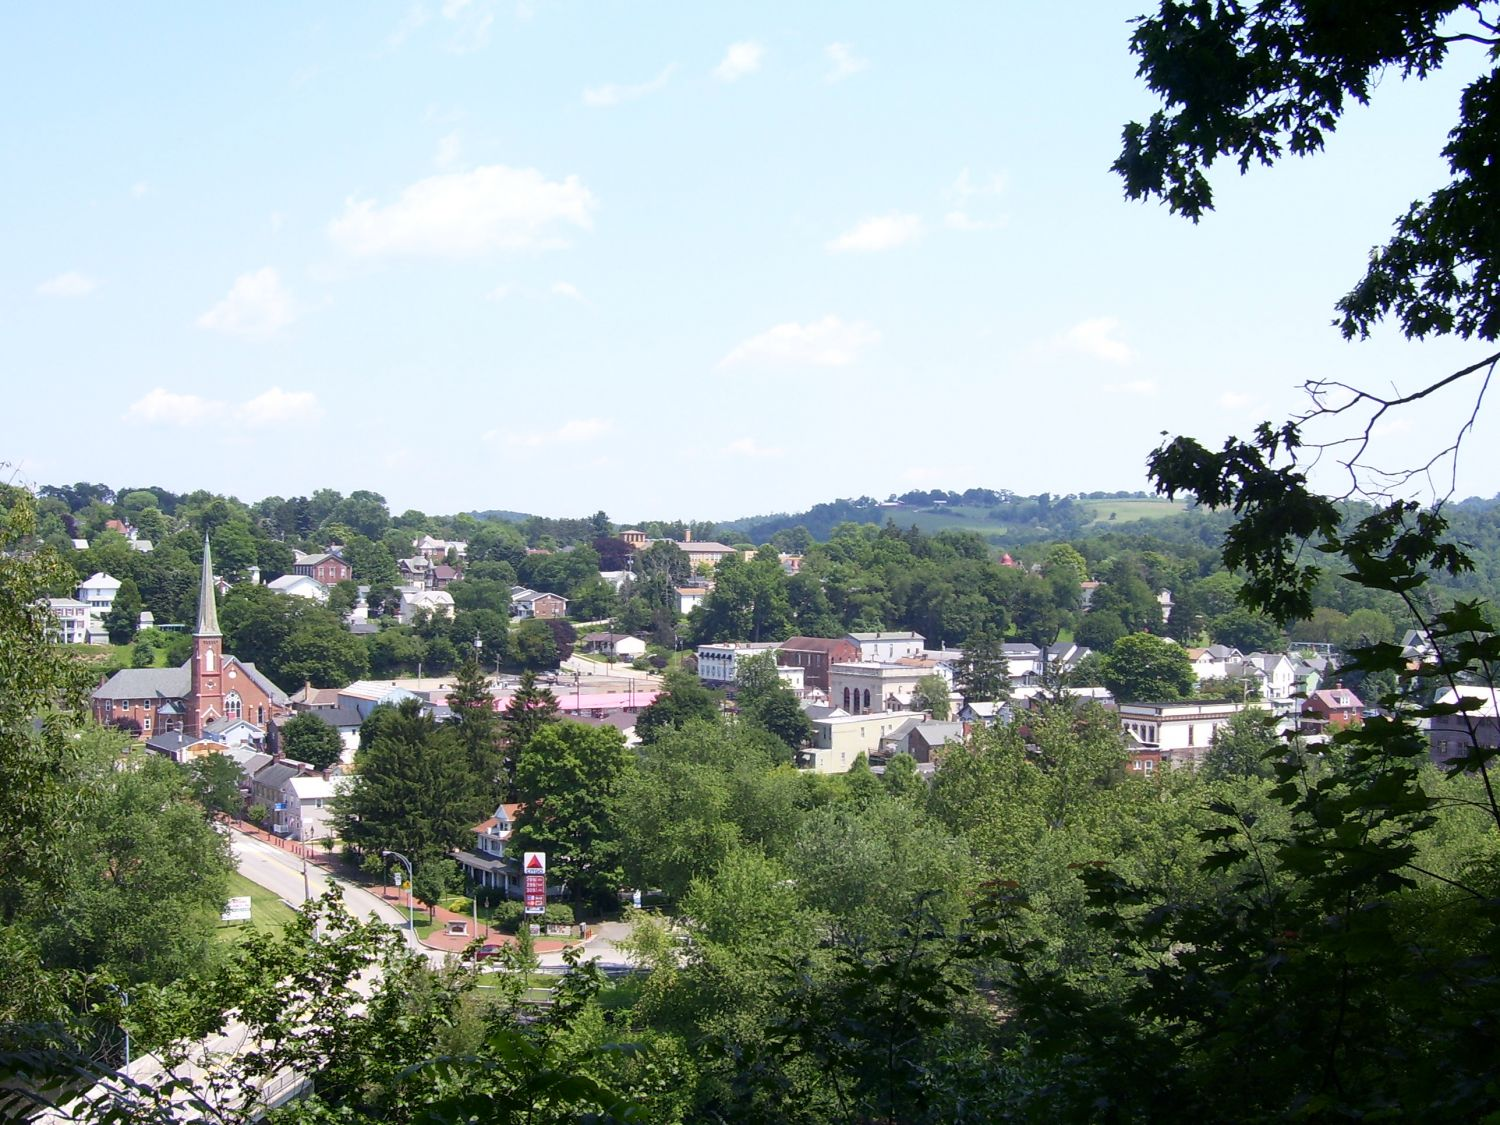 Saltsburg Historic District - Photo Credit: C J Pro at en.wikipedia [Public domain], from Wikimedia Commons